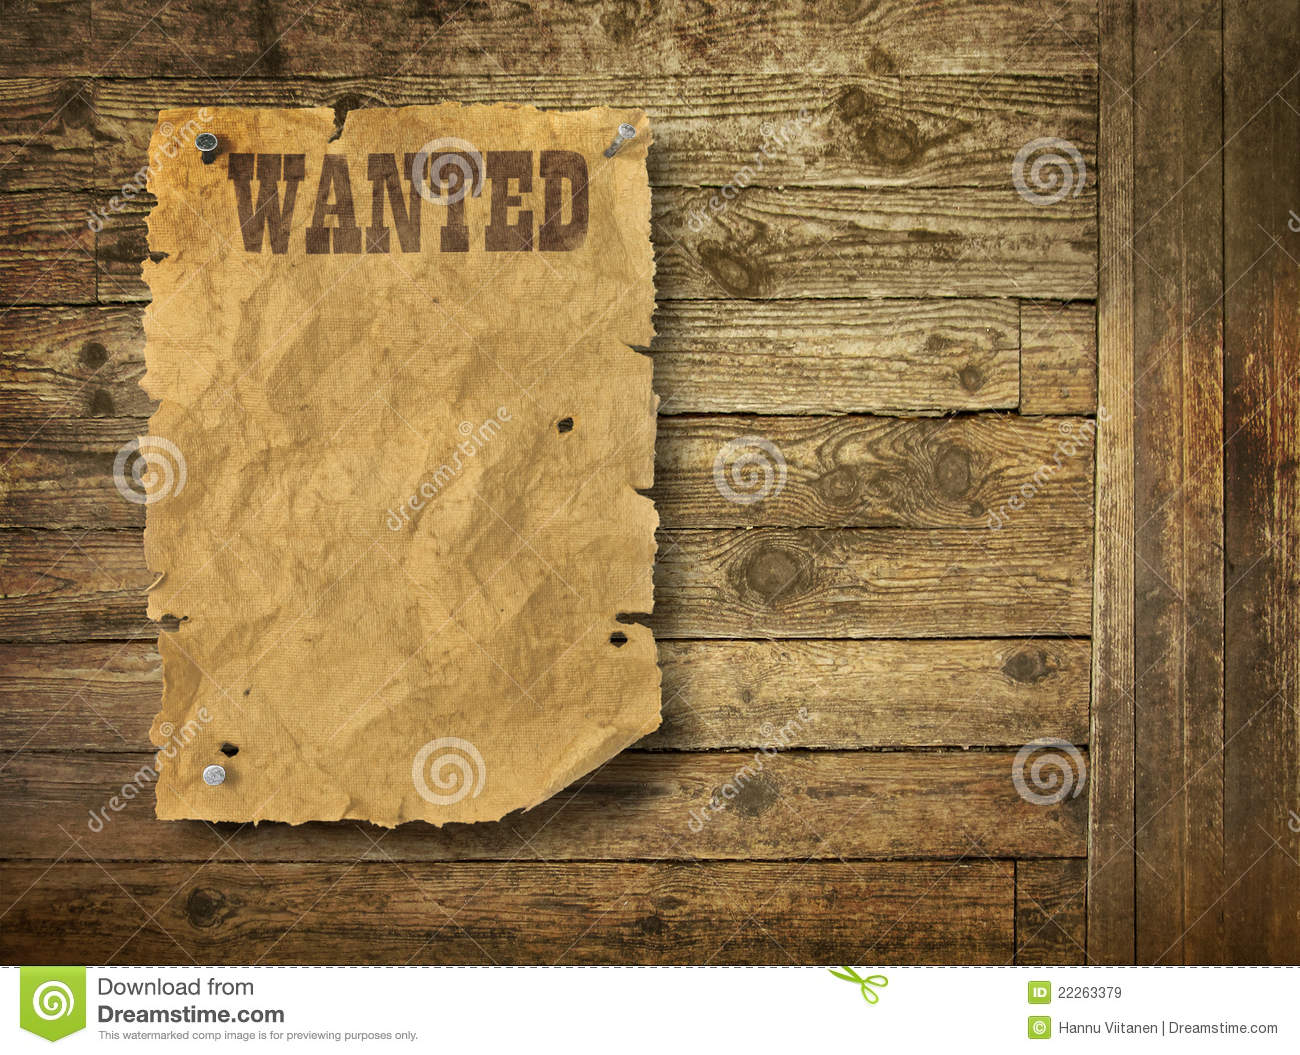 Torn Wild West Wanted Poster Royalty Free Stock Images - Image ...